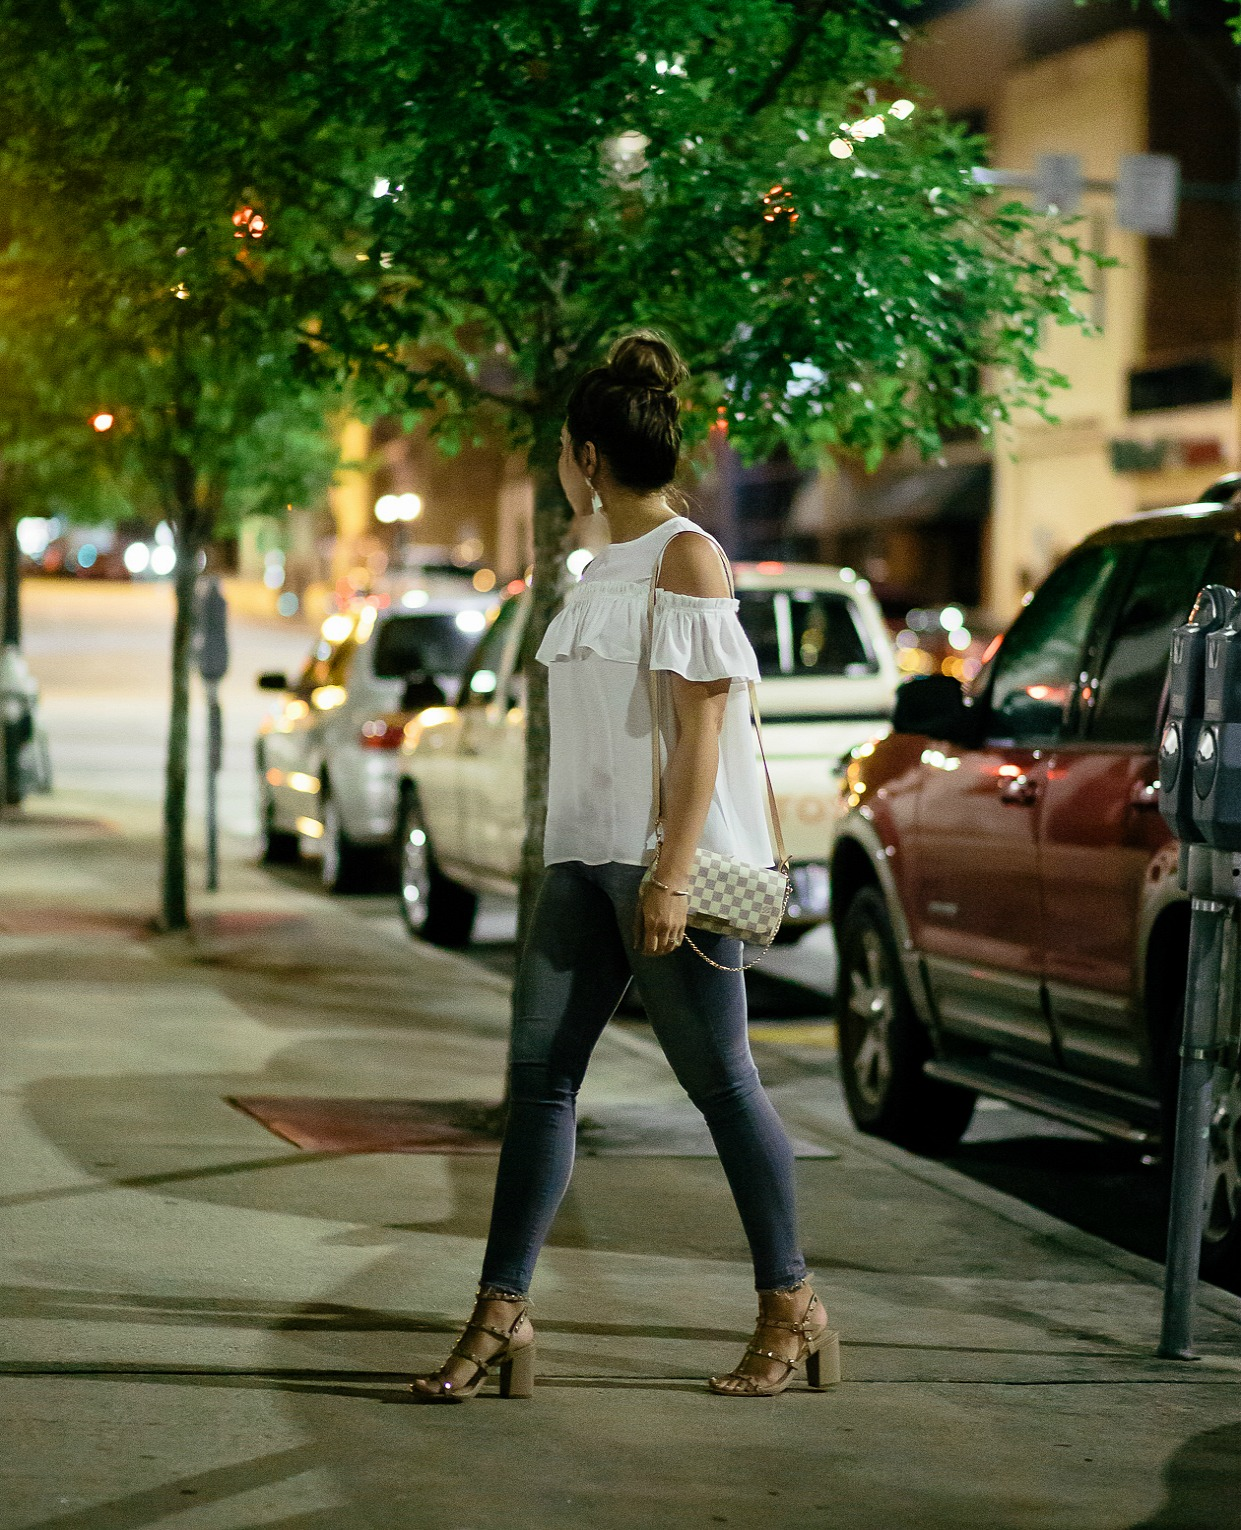 louis vuitton favorite pm, cold shoulder ruffle top, date night look, ag legging denim